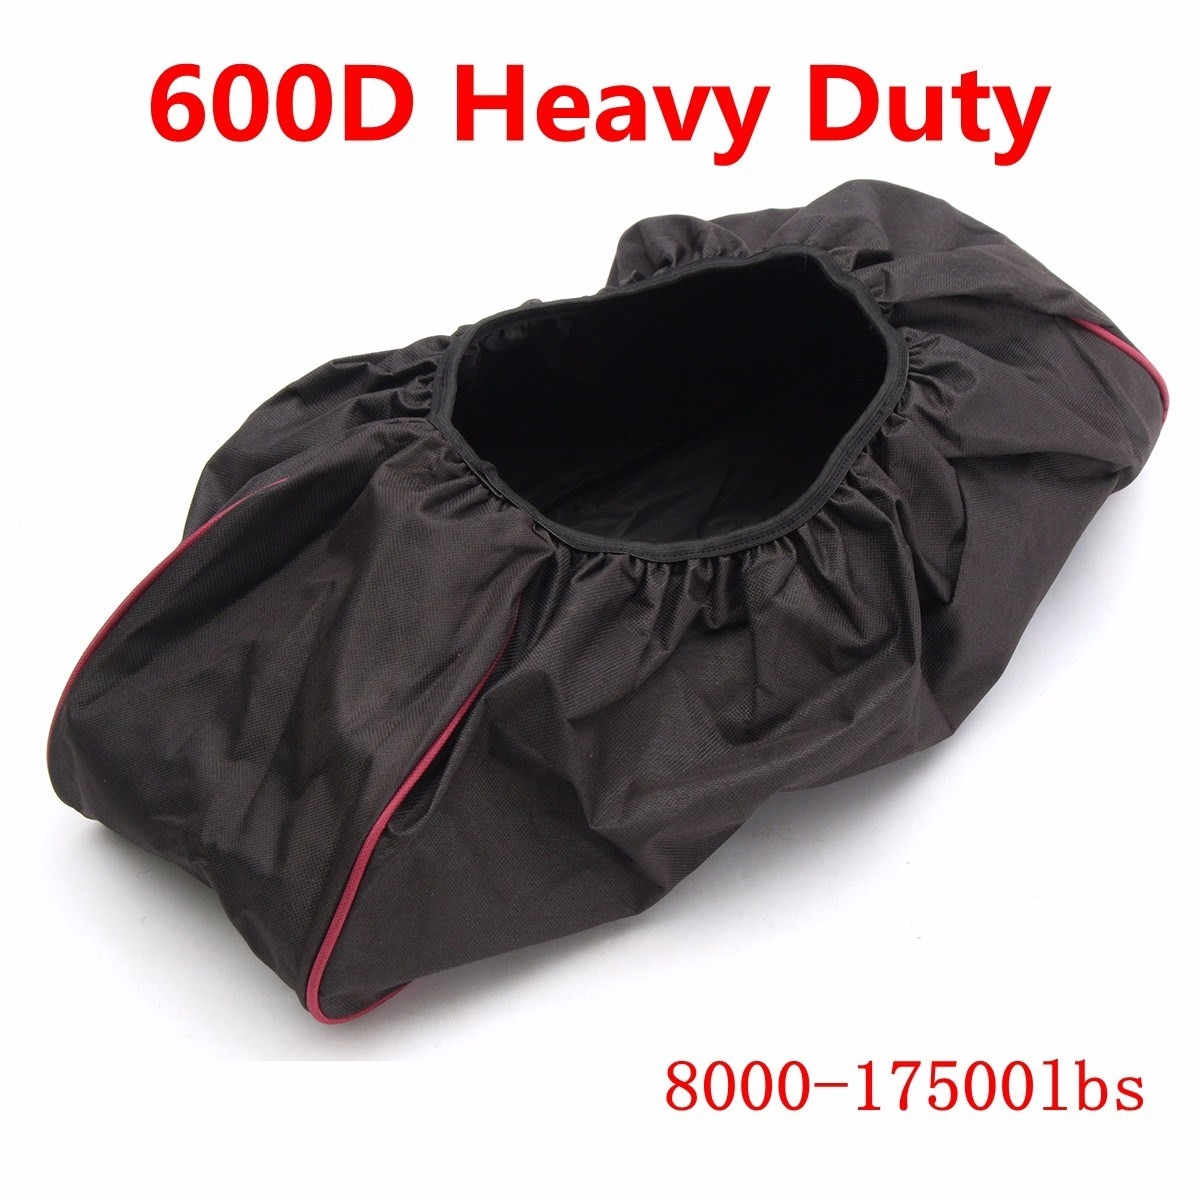 Black Thick Waterproof Soft Winch Dust Capstan Cover 600D Driver Recovery 8000-17500 lbs Trailer SUV